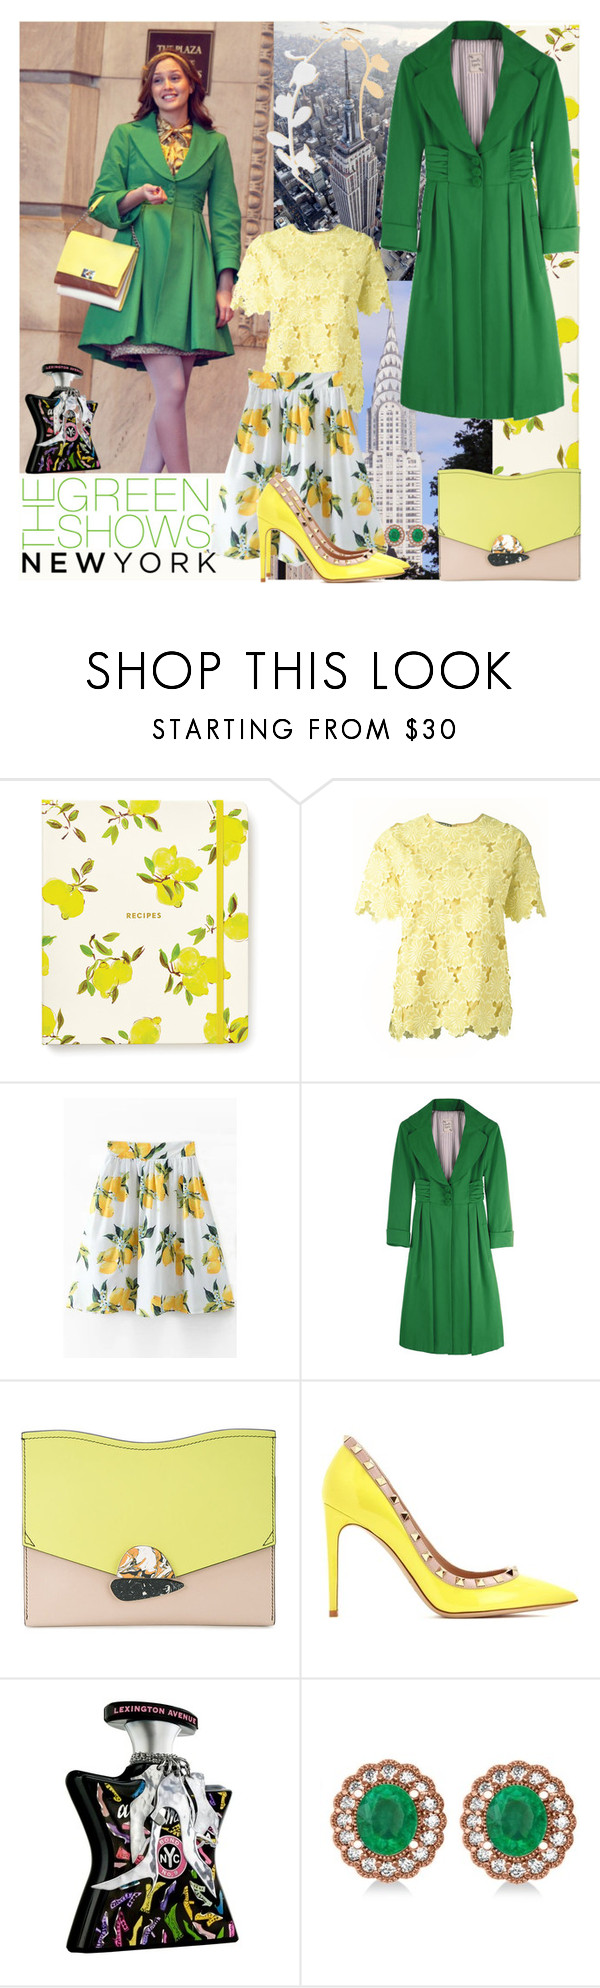 """""""The Green Shows:  New York"""" by bklou ❤ liked on Polyvore featuring Kate Spade, Rochas, Nanette Lepore, Proenza Schouler, Valentino, Bond No. 9, Allurez and Marni"""